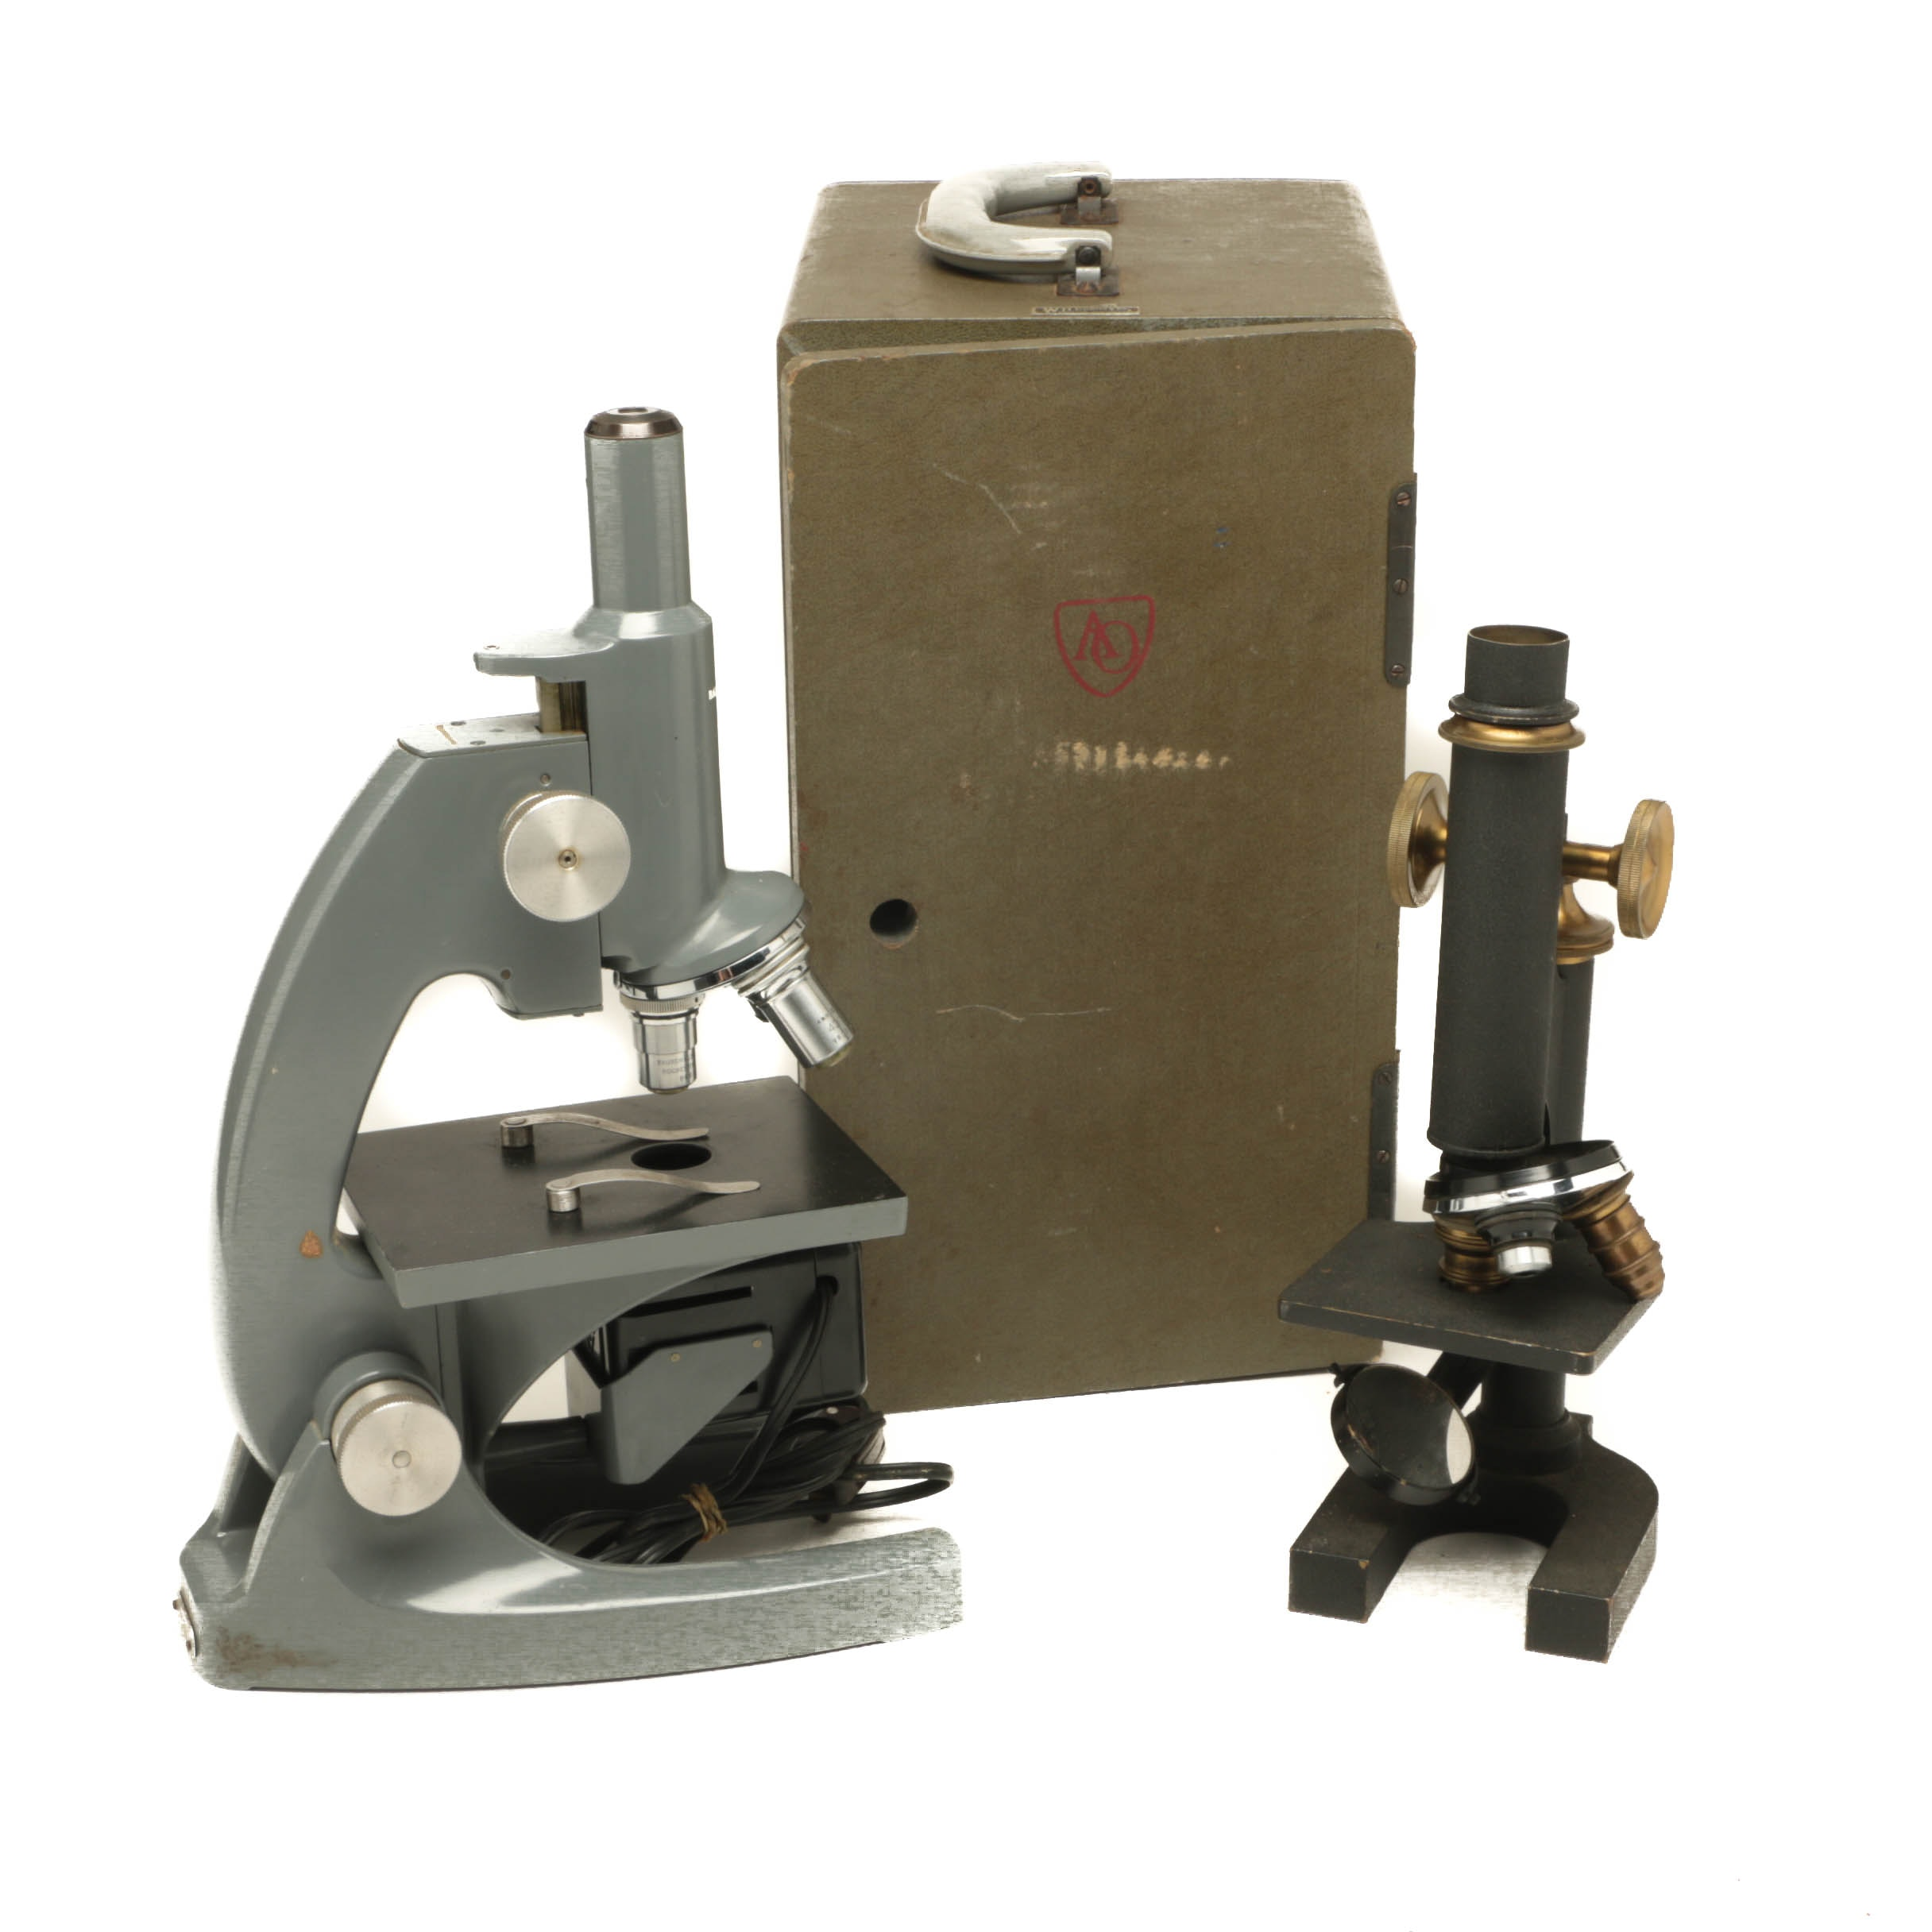 Vintage Bausch and Lomb Microscope and American Optical Microscope